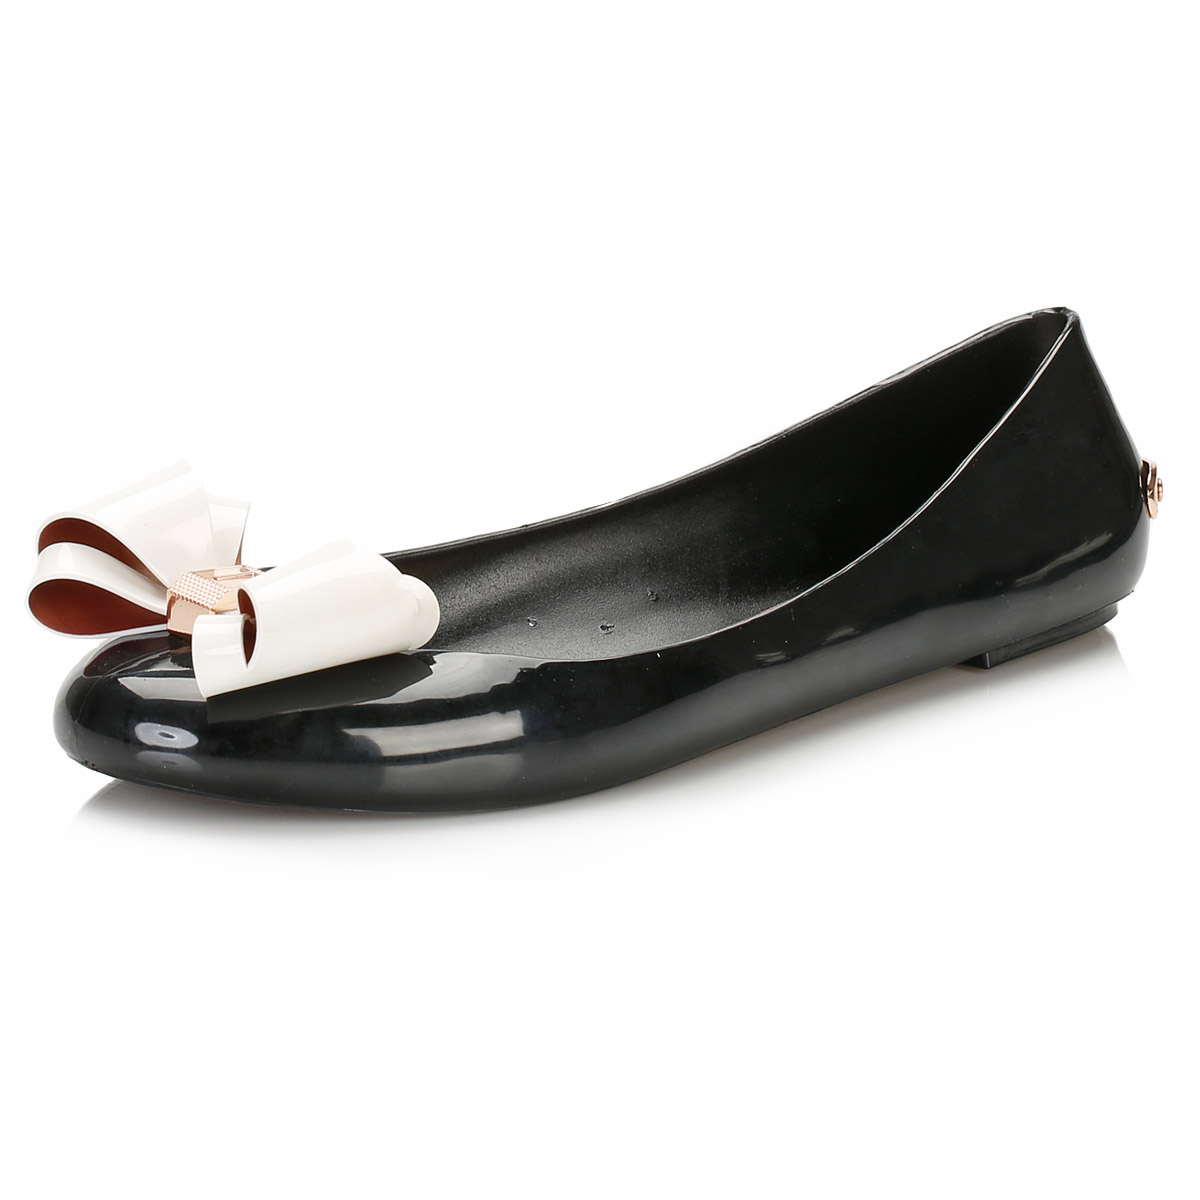 1b6625db5fc1c Ted Baker Womens Ballerina Flats, Black & Cream Julivia Casual Shoes Ladies